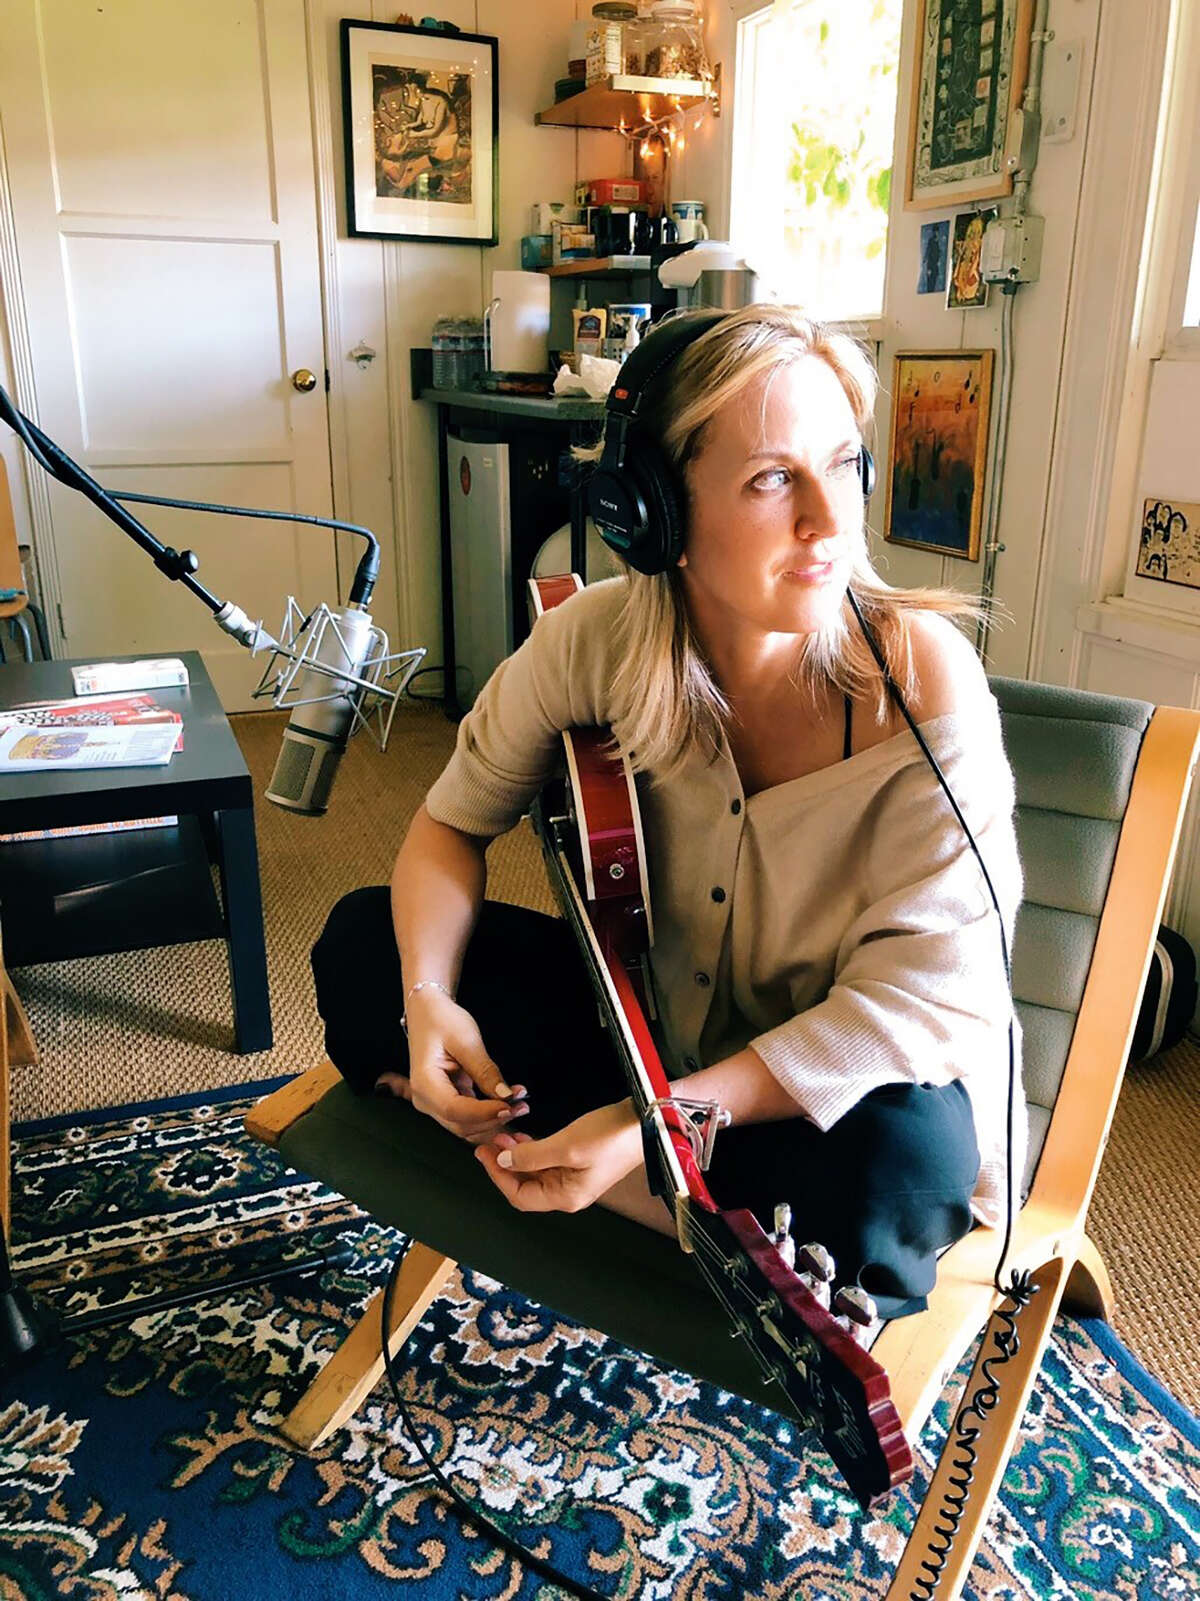 """Liz Phair works on """"Soberish"""" at music producer Brad Wood's Seagrass Studio in 2019. The album marks a reunion with Wood, her musical partner on 1993's """"Exile in Guyville,"""" and its follow-up, 1994's """"Whip-Smart."""""""